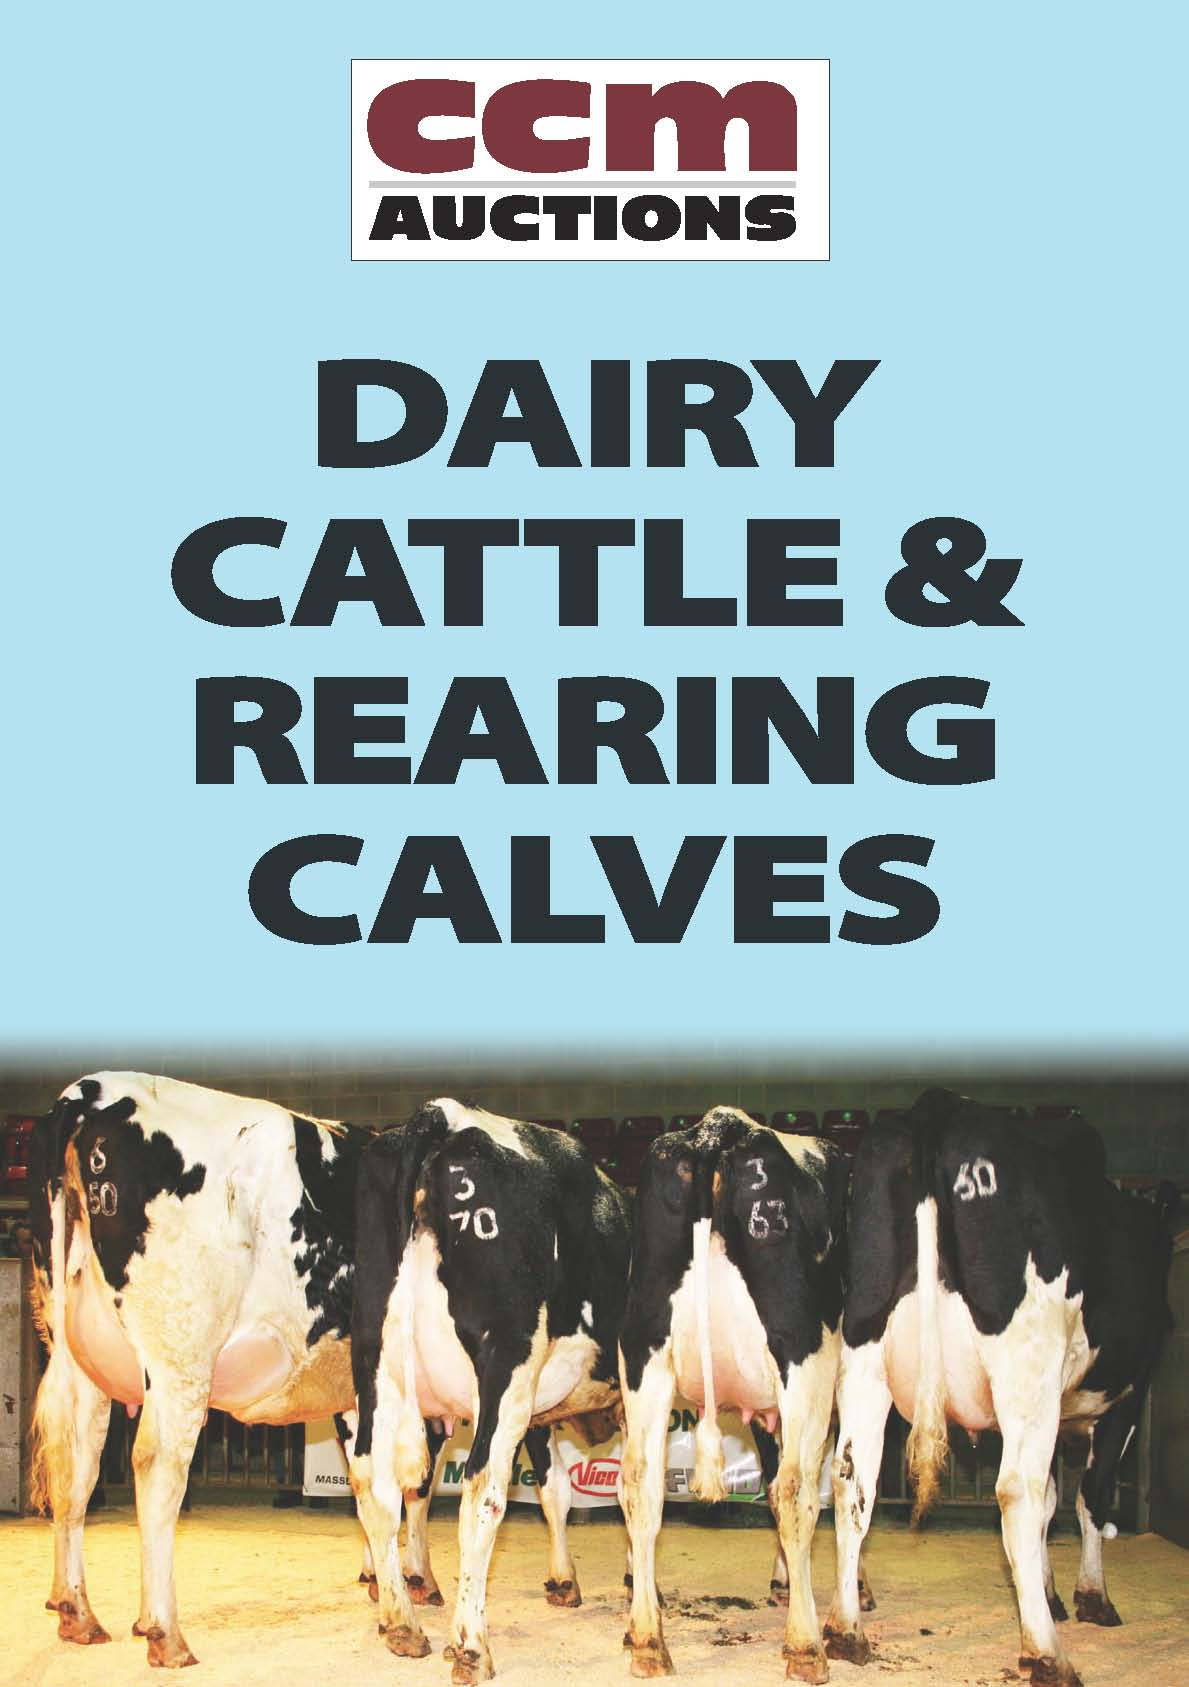 CALVES - MONDAY 4TH APRIL 2016